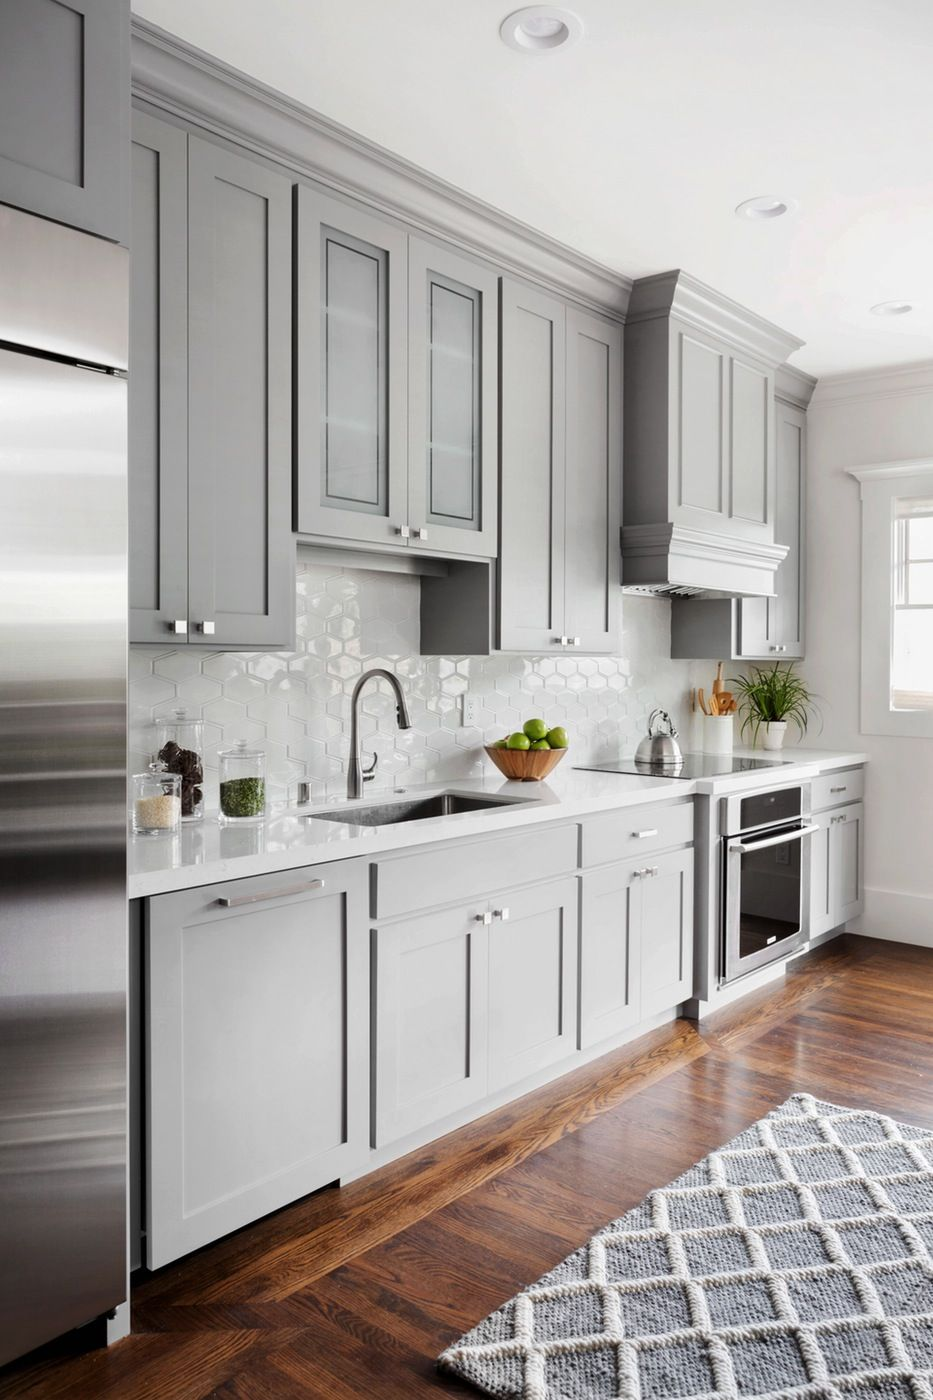 The Avenues Arts and Crafts Kitchen by Suzanne Childress Design ...